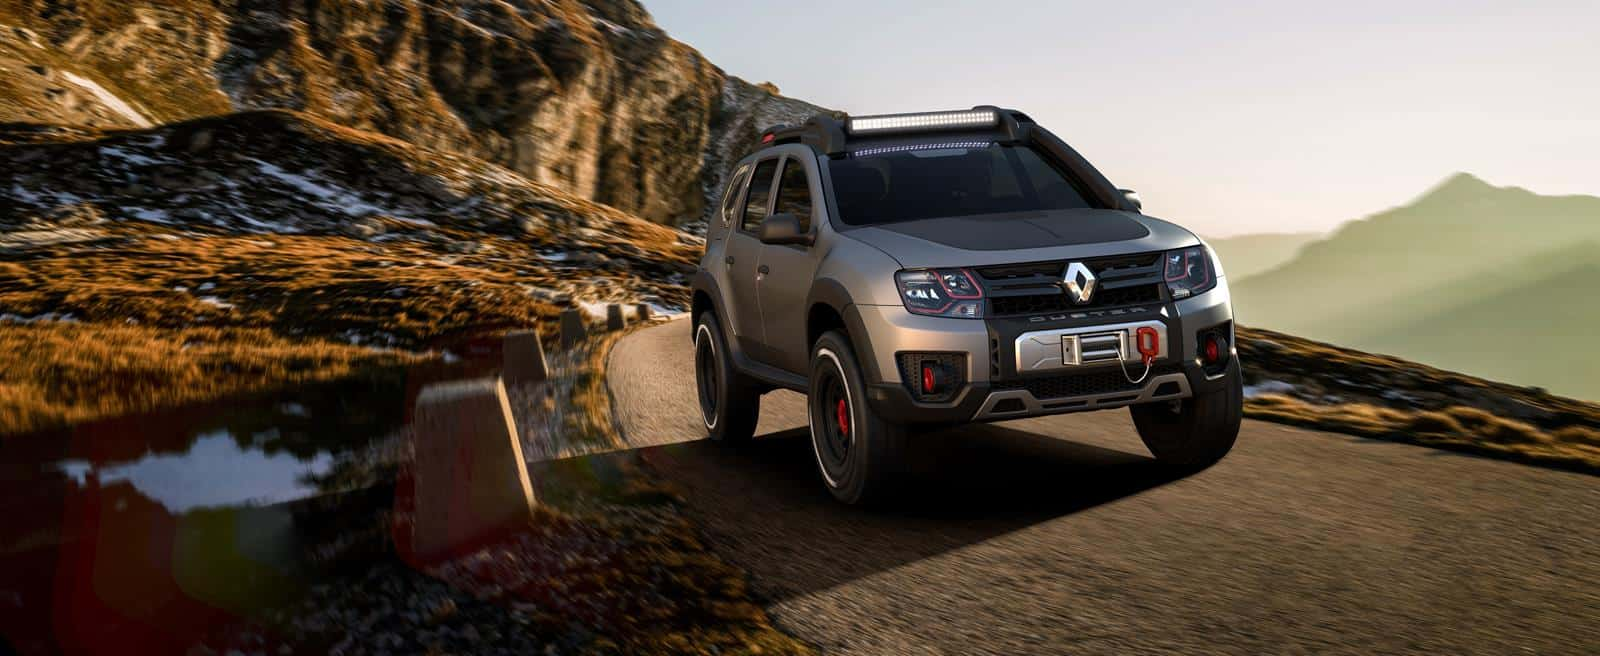 2016-renault-duster-extreme-concept-7